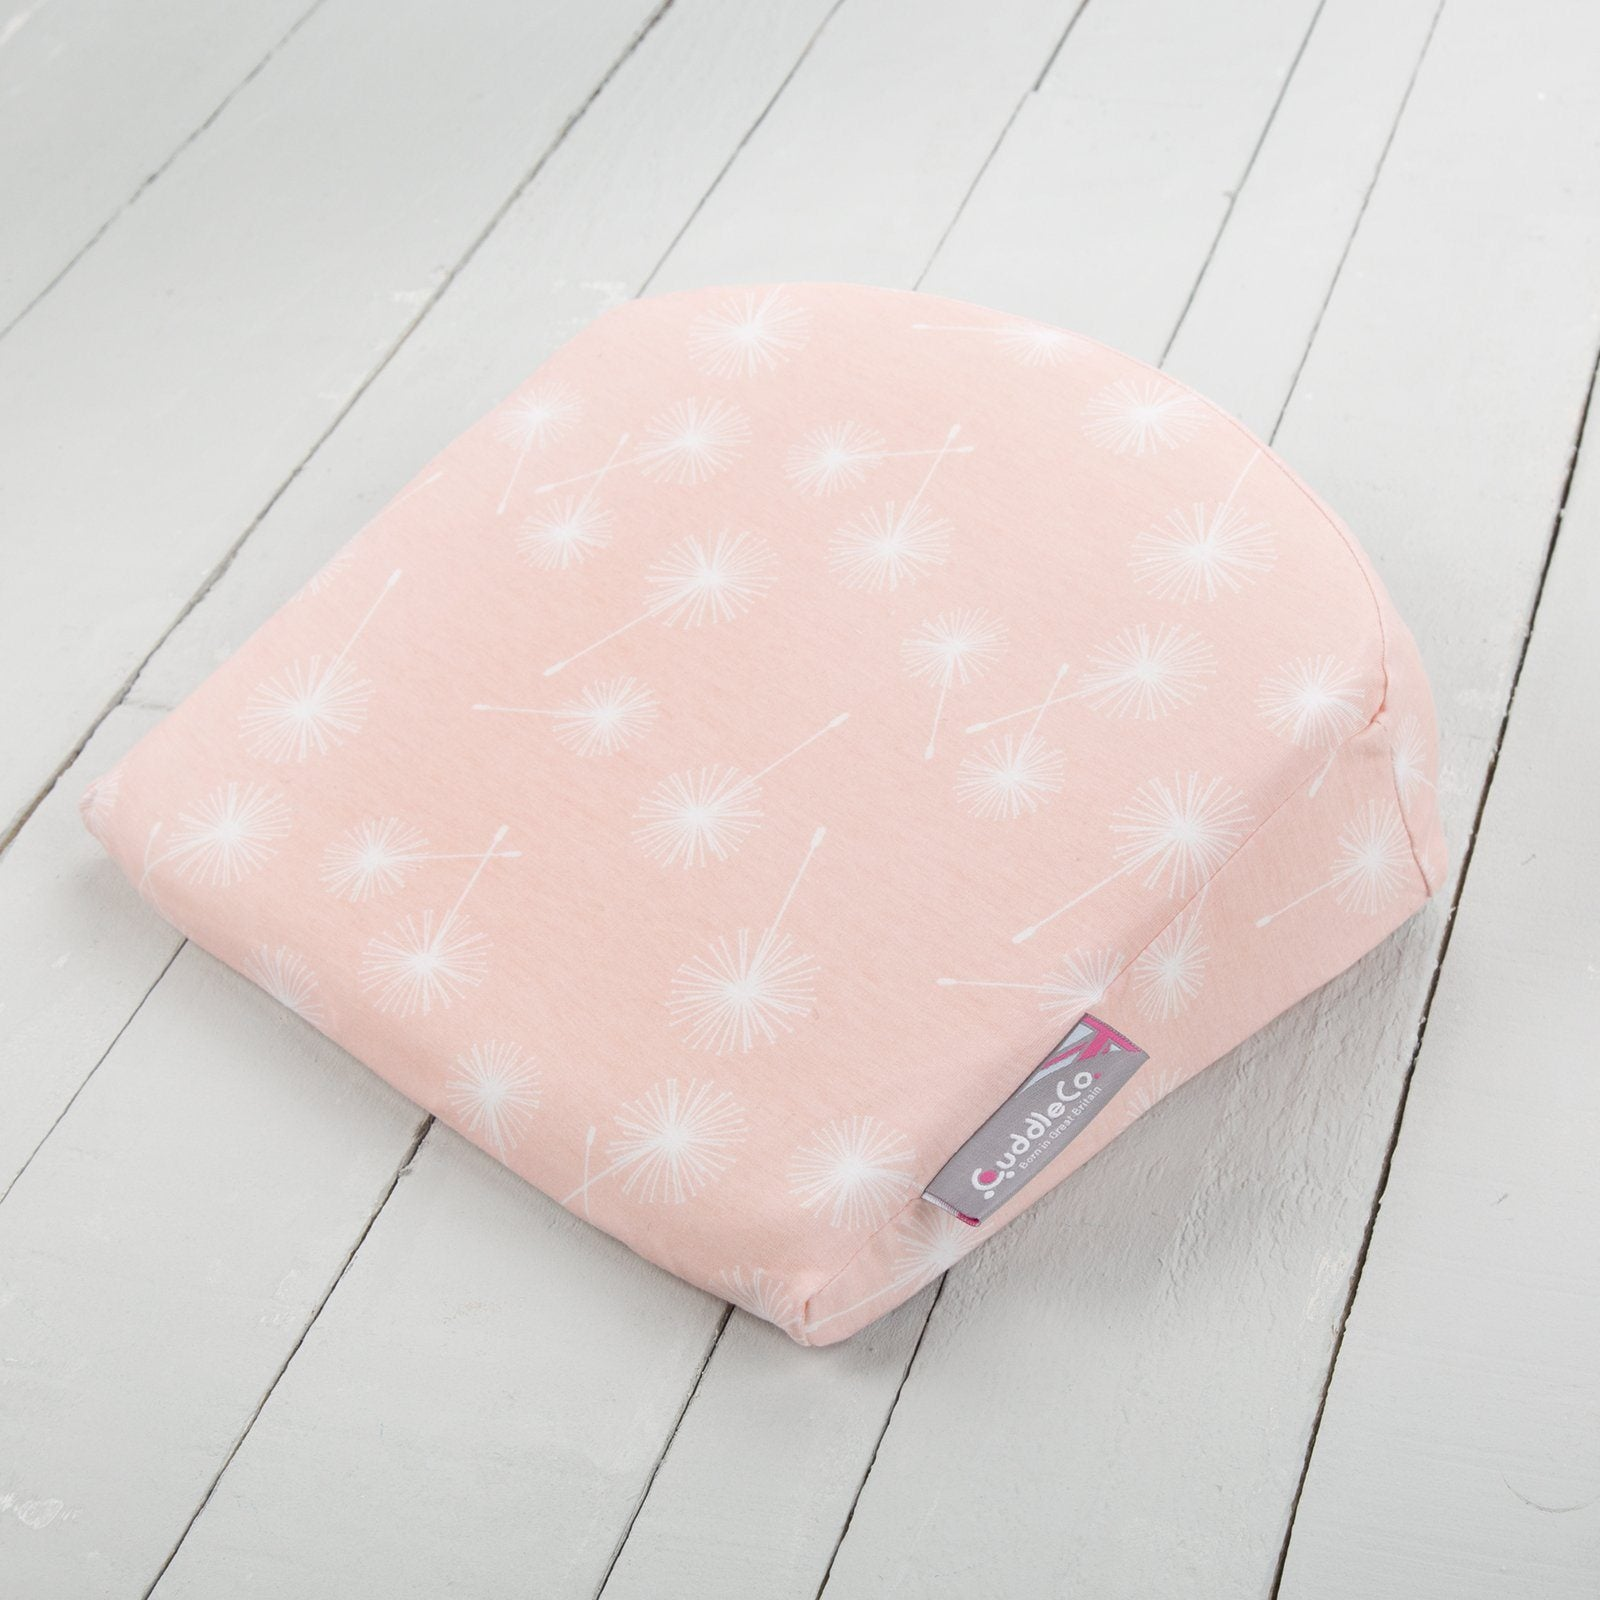 Comfi-Mum 3in1 Memory Foam Wedge Cushion - Pink Sugar Plum Fairies Feeding & Support cuddleco